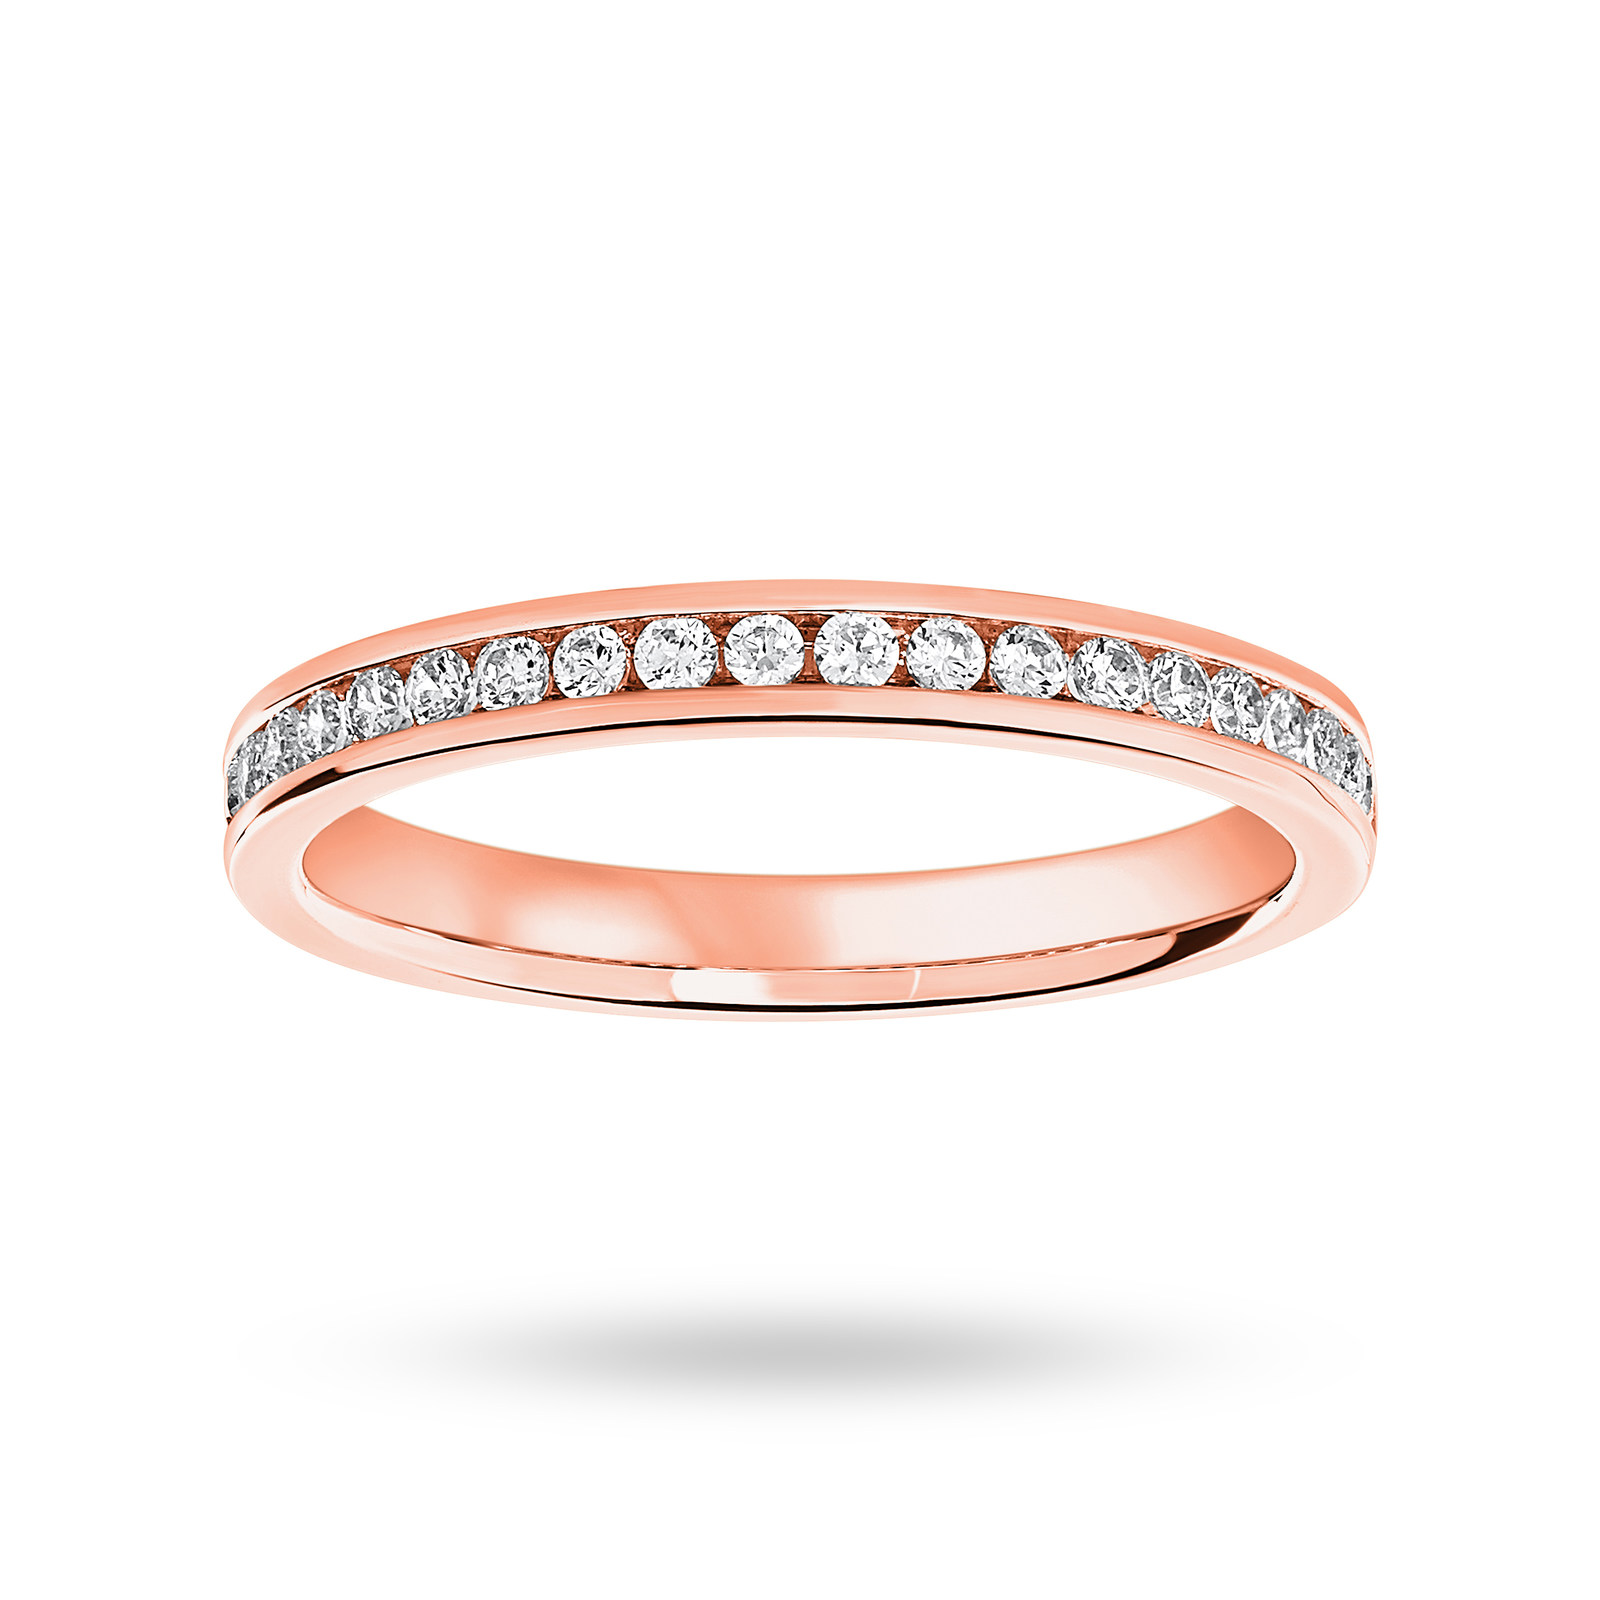 18 Carat Rose Gold 0.25 Carat Brilliant Cut Half Eternity Ring